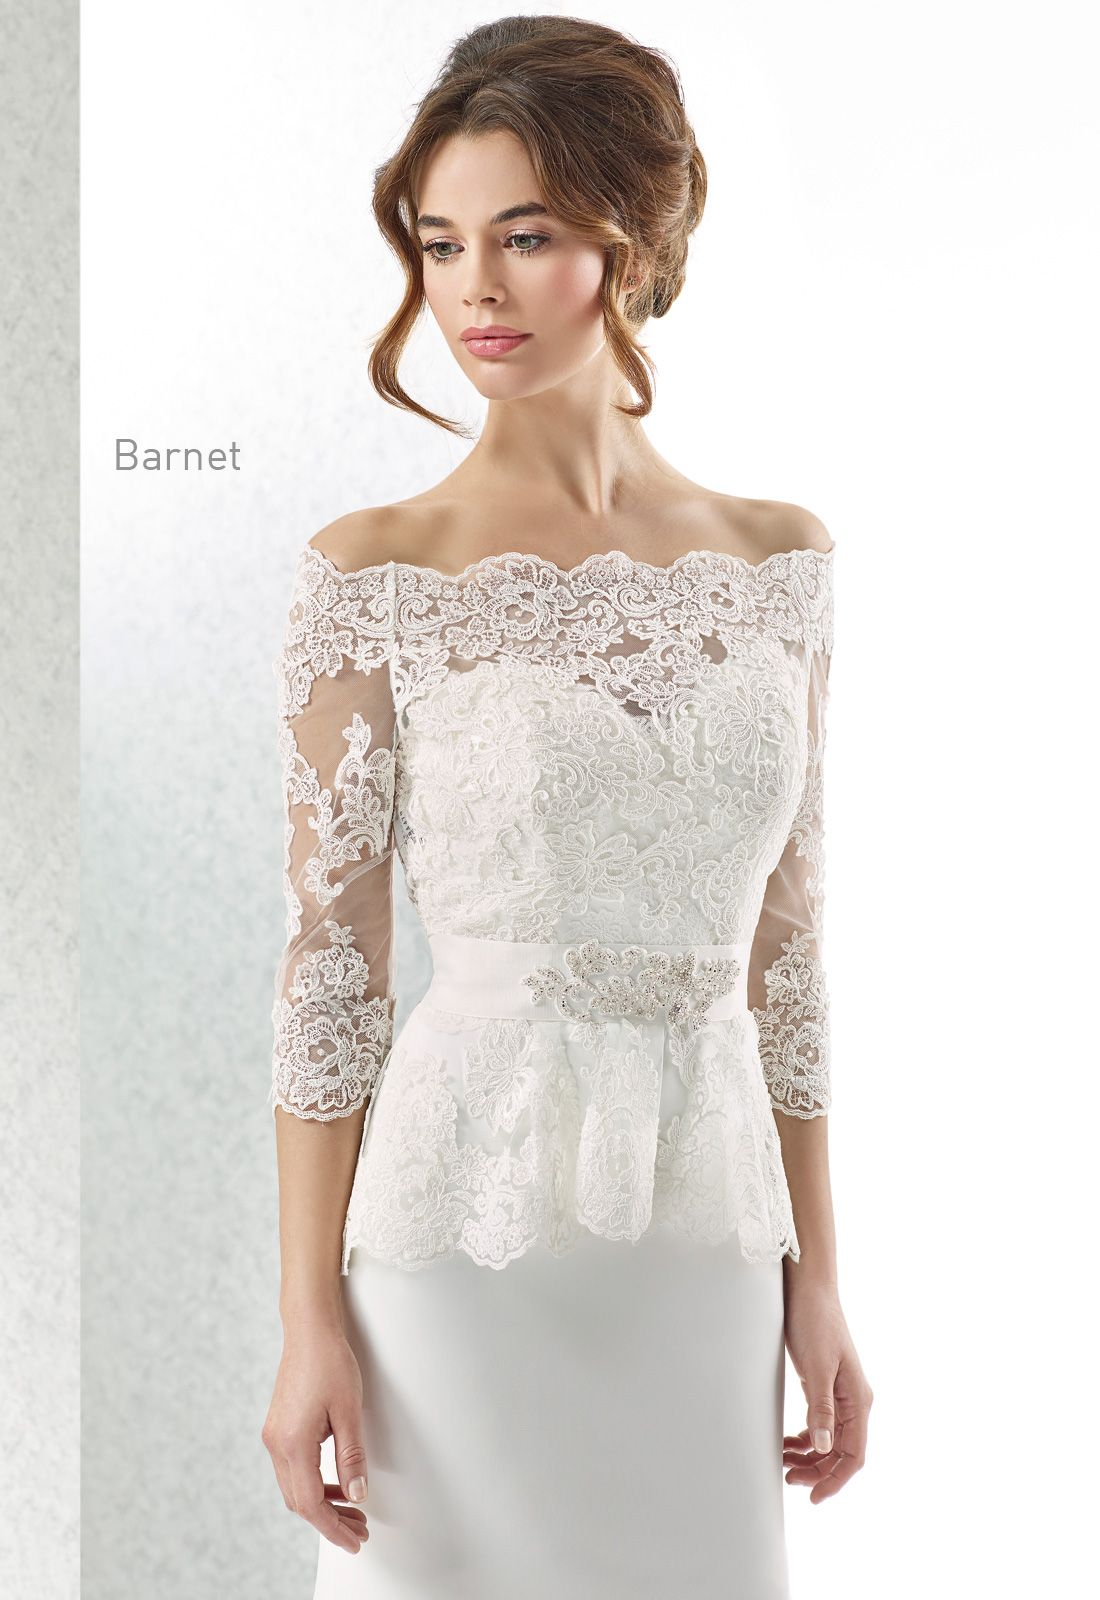 Barnet wedding dress cabotine dresses pinterest wedding dress